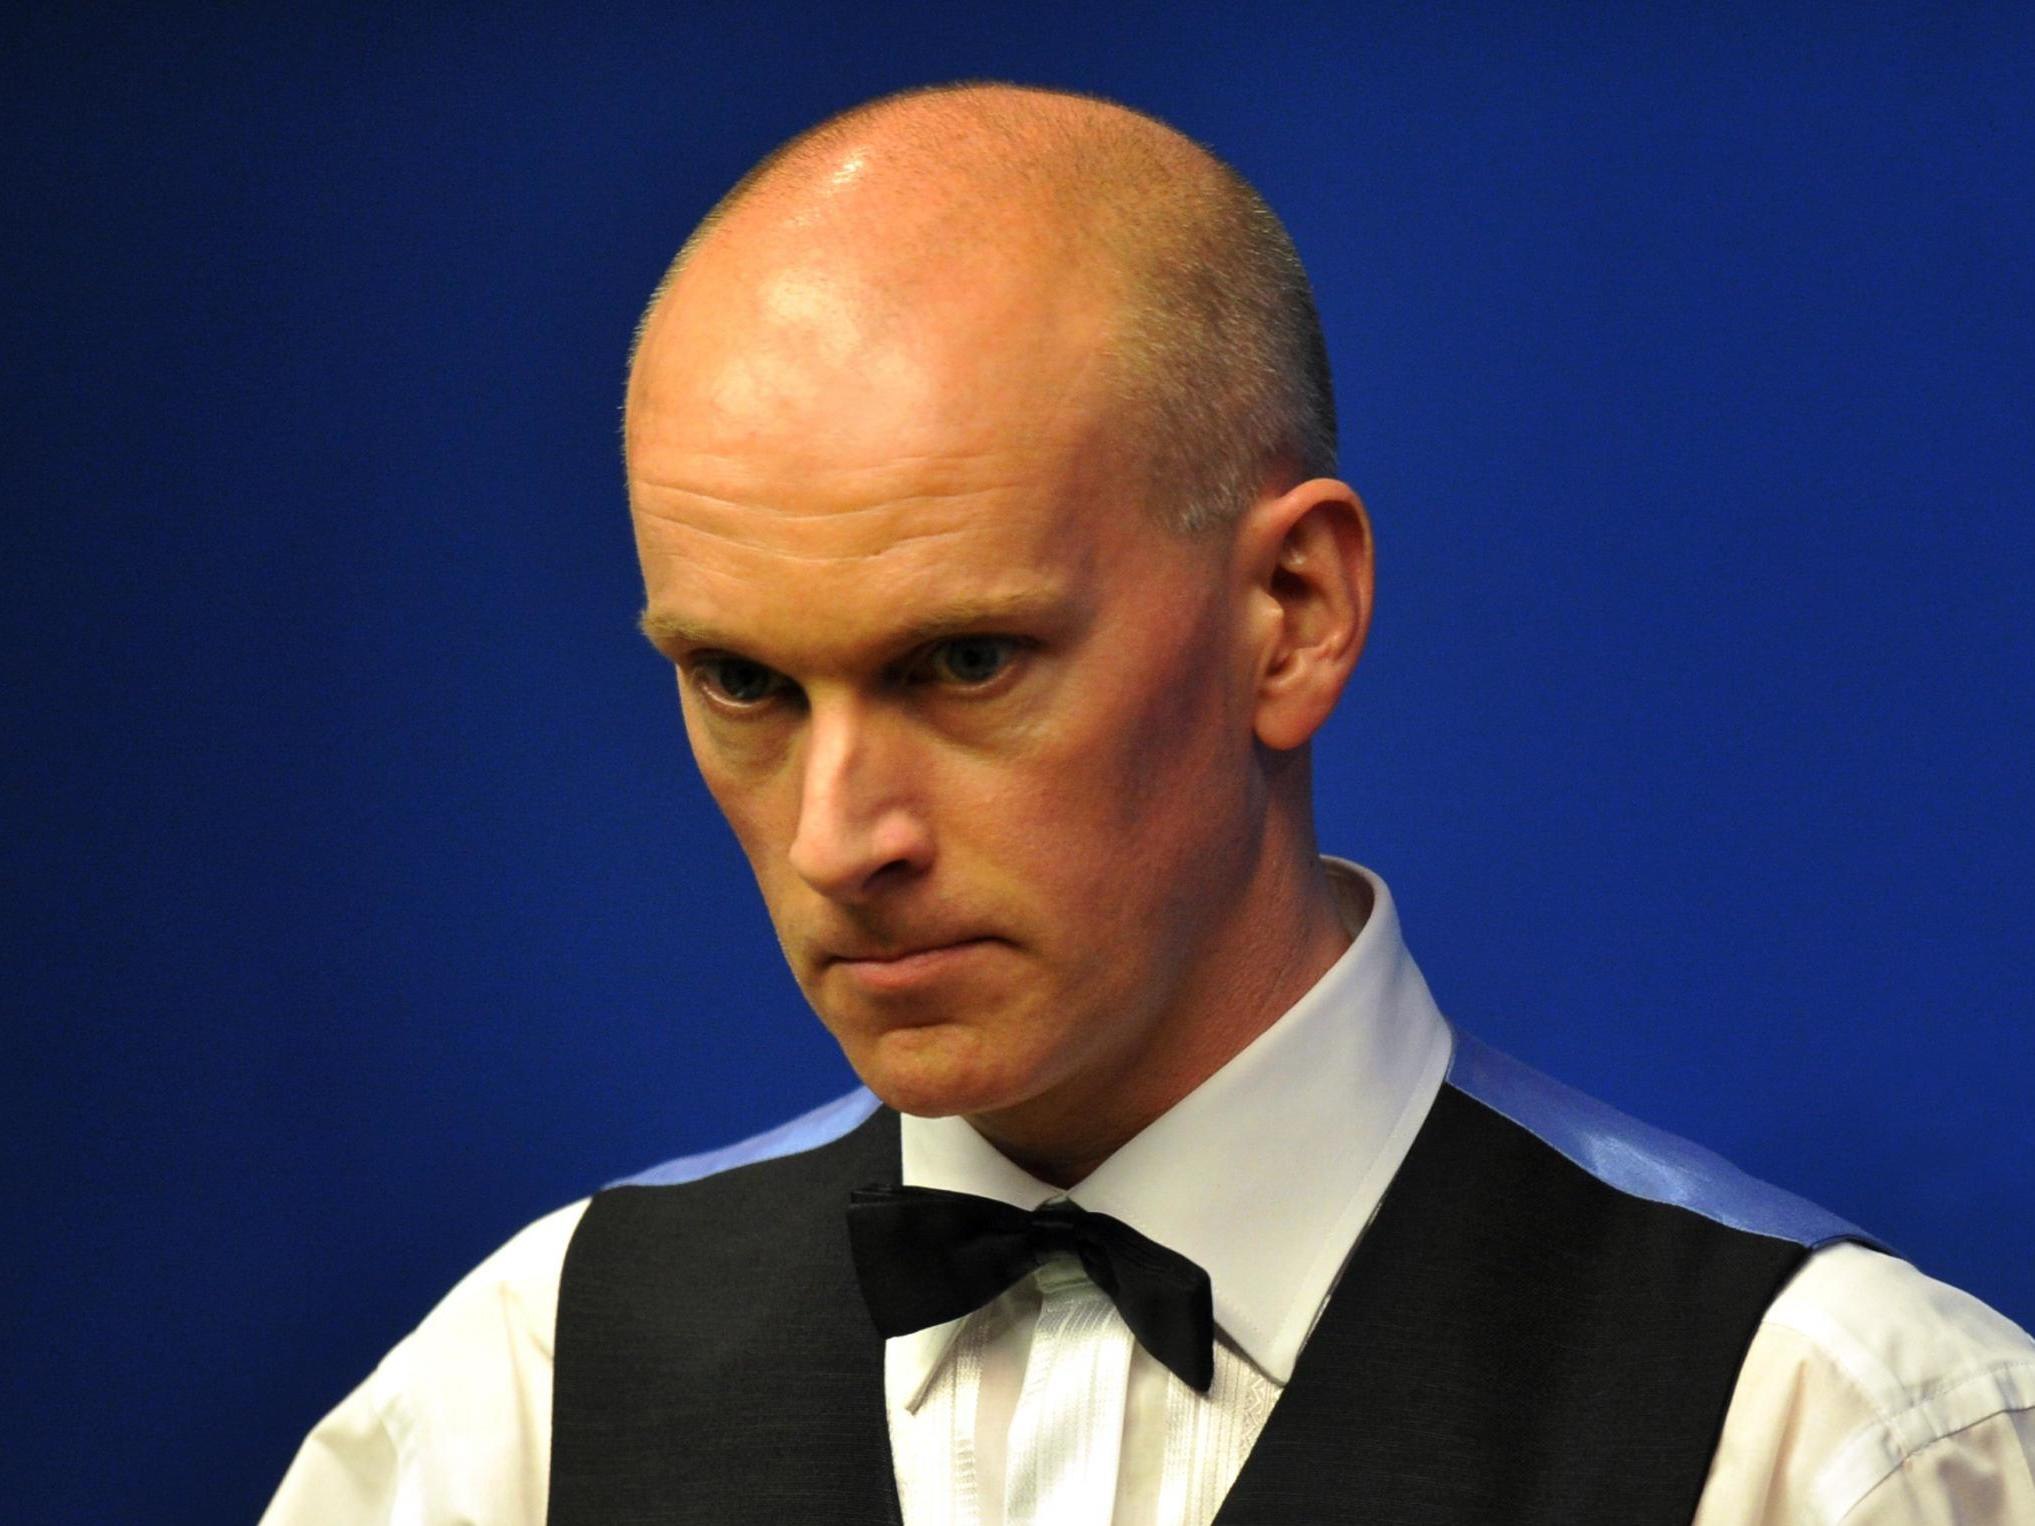 Peter Ebdon: Former snooker champion promotes coronavirus conspiracy theory during BBC interview